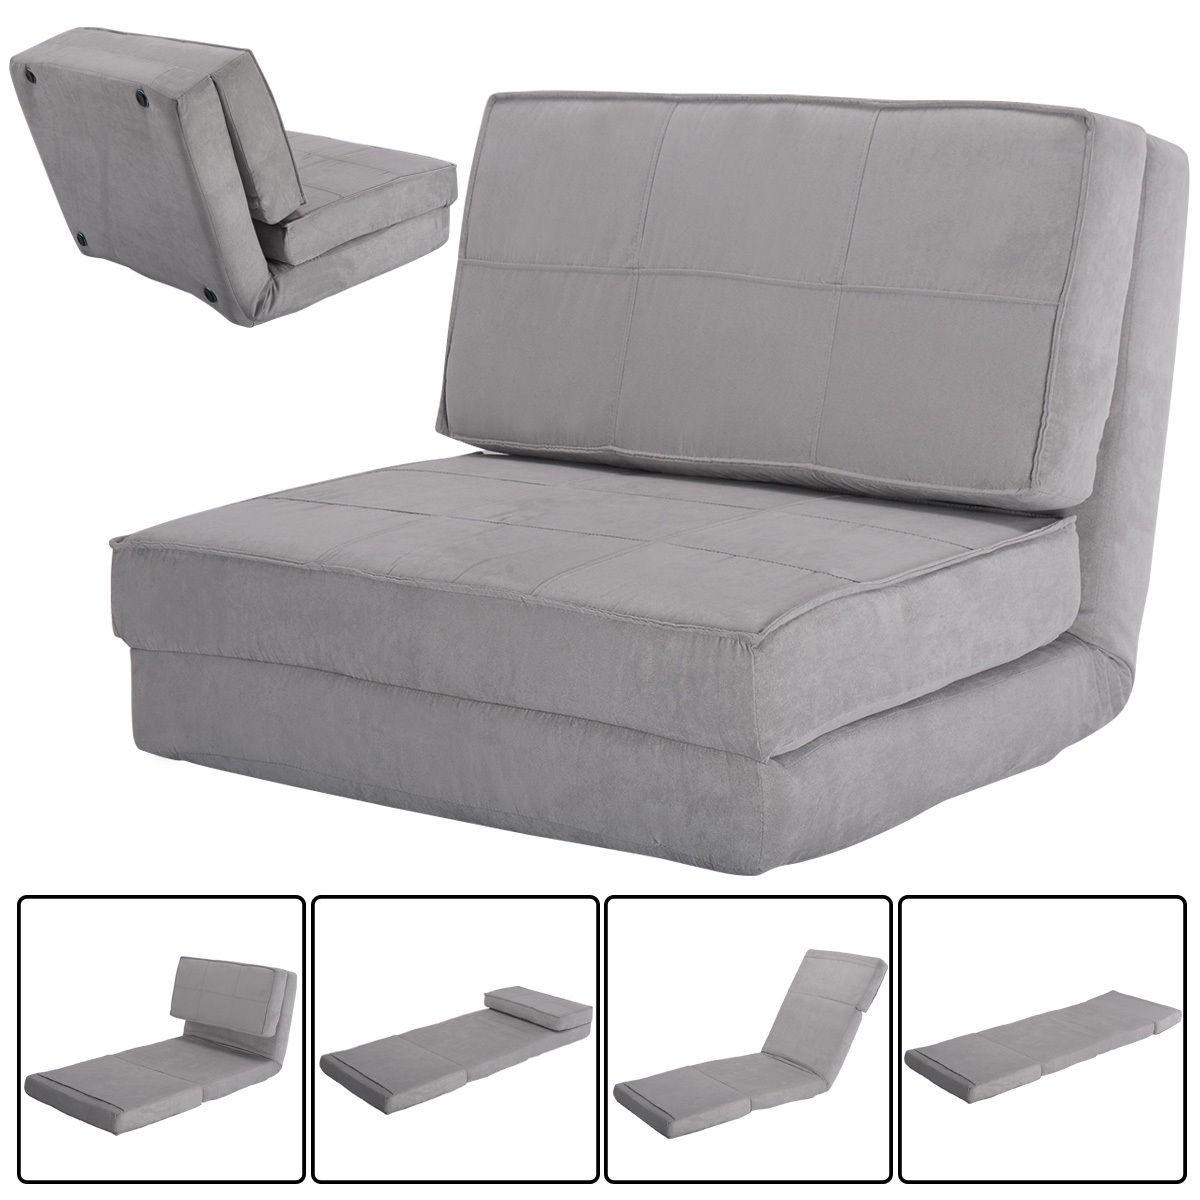 Convertible Lounger Folding Sofa Sleeper Bed – Sofas – Furniture For Folding Sofa Chairs (View 10 of 20)